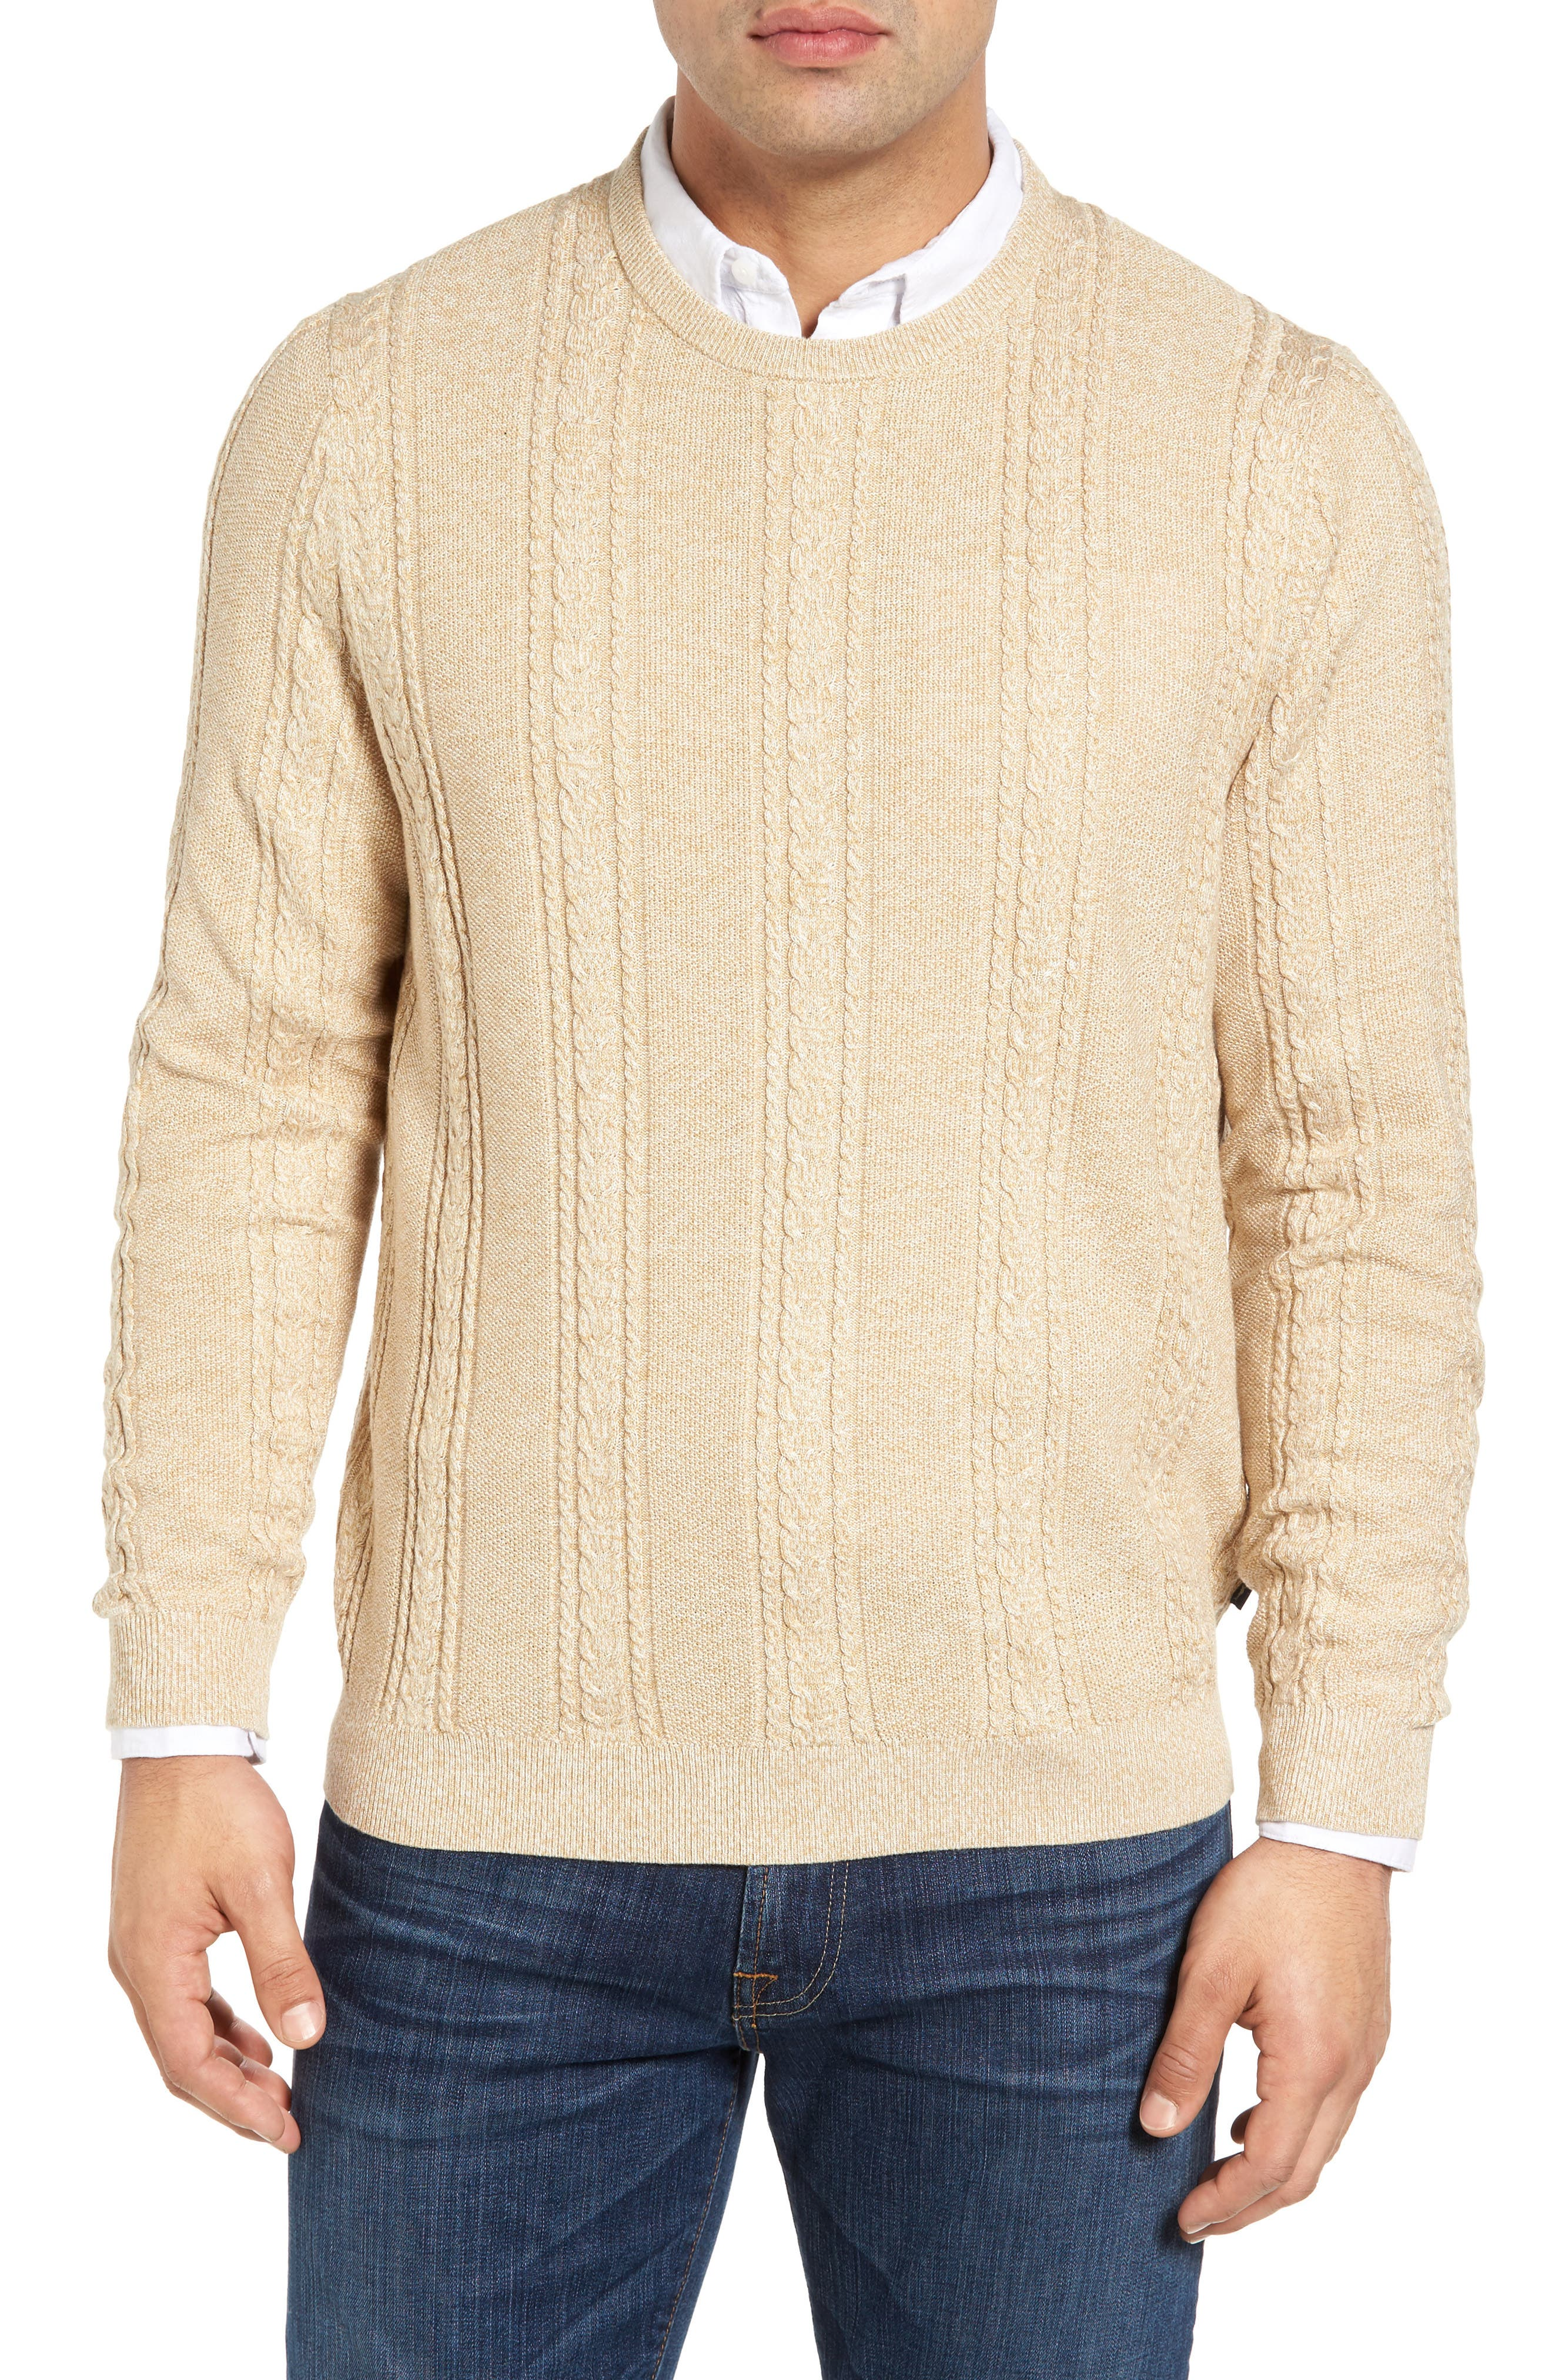 Alternate Image 1 Selected - Tommy Bahama Marled Silk Blend Sweater